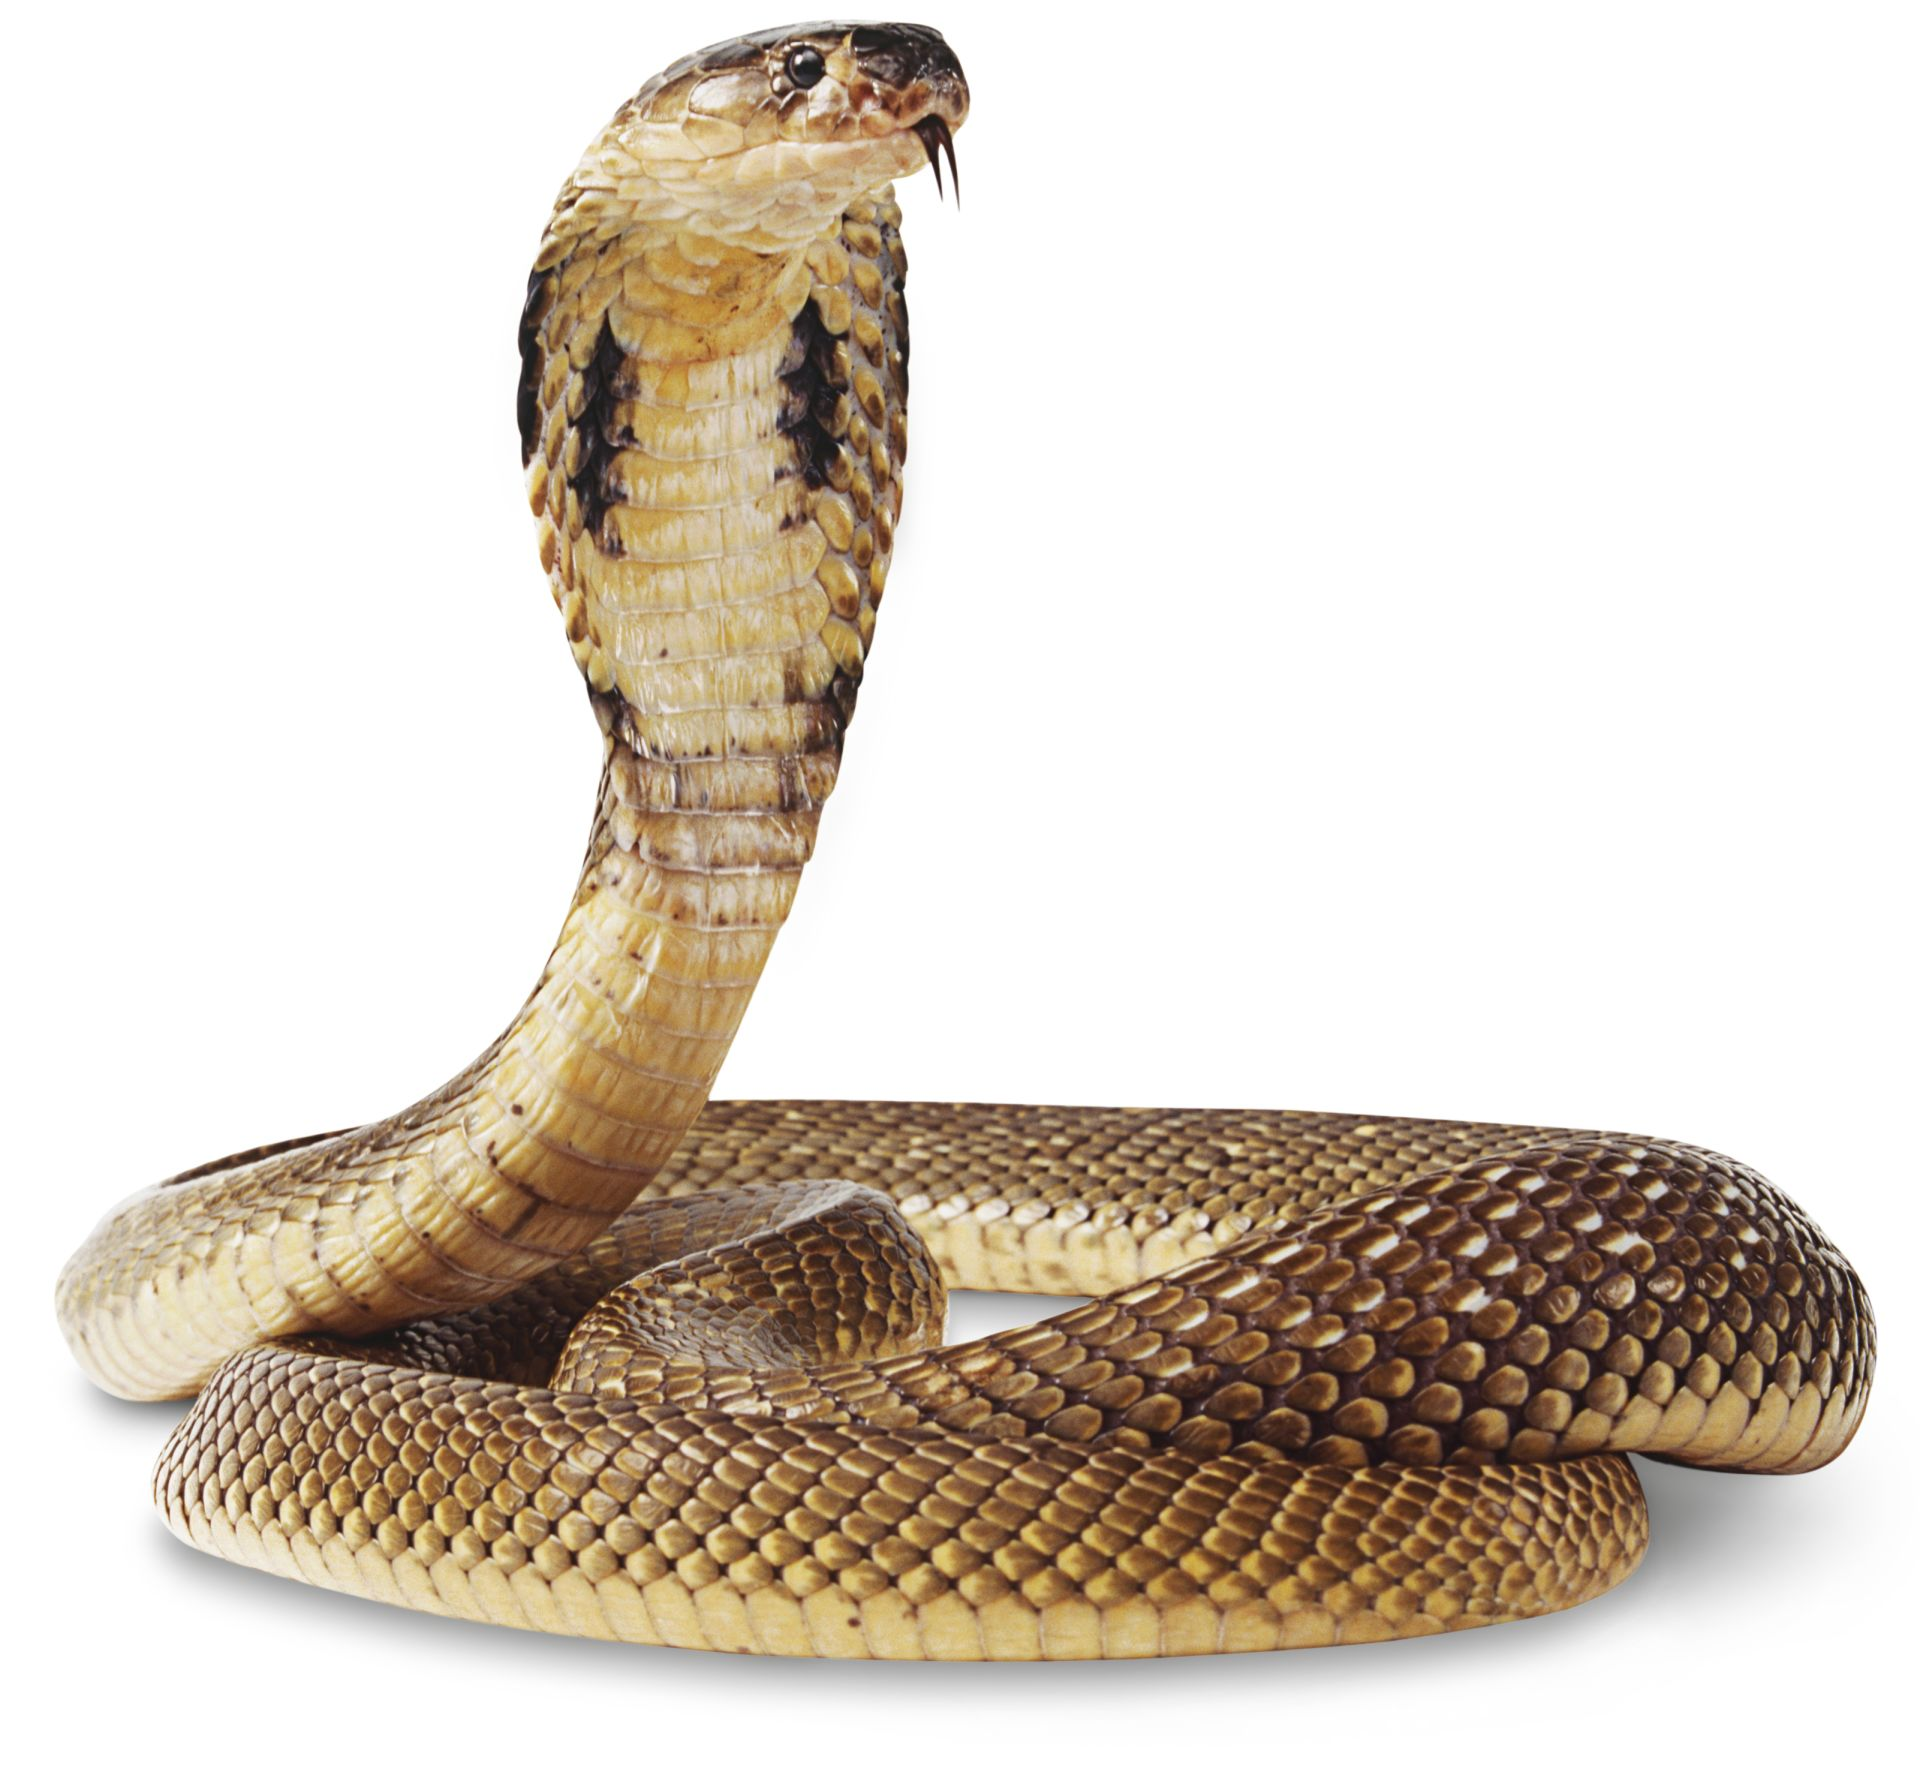 Cobra Snake Facts | Cobra Snake Information | DK Find Out